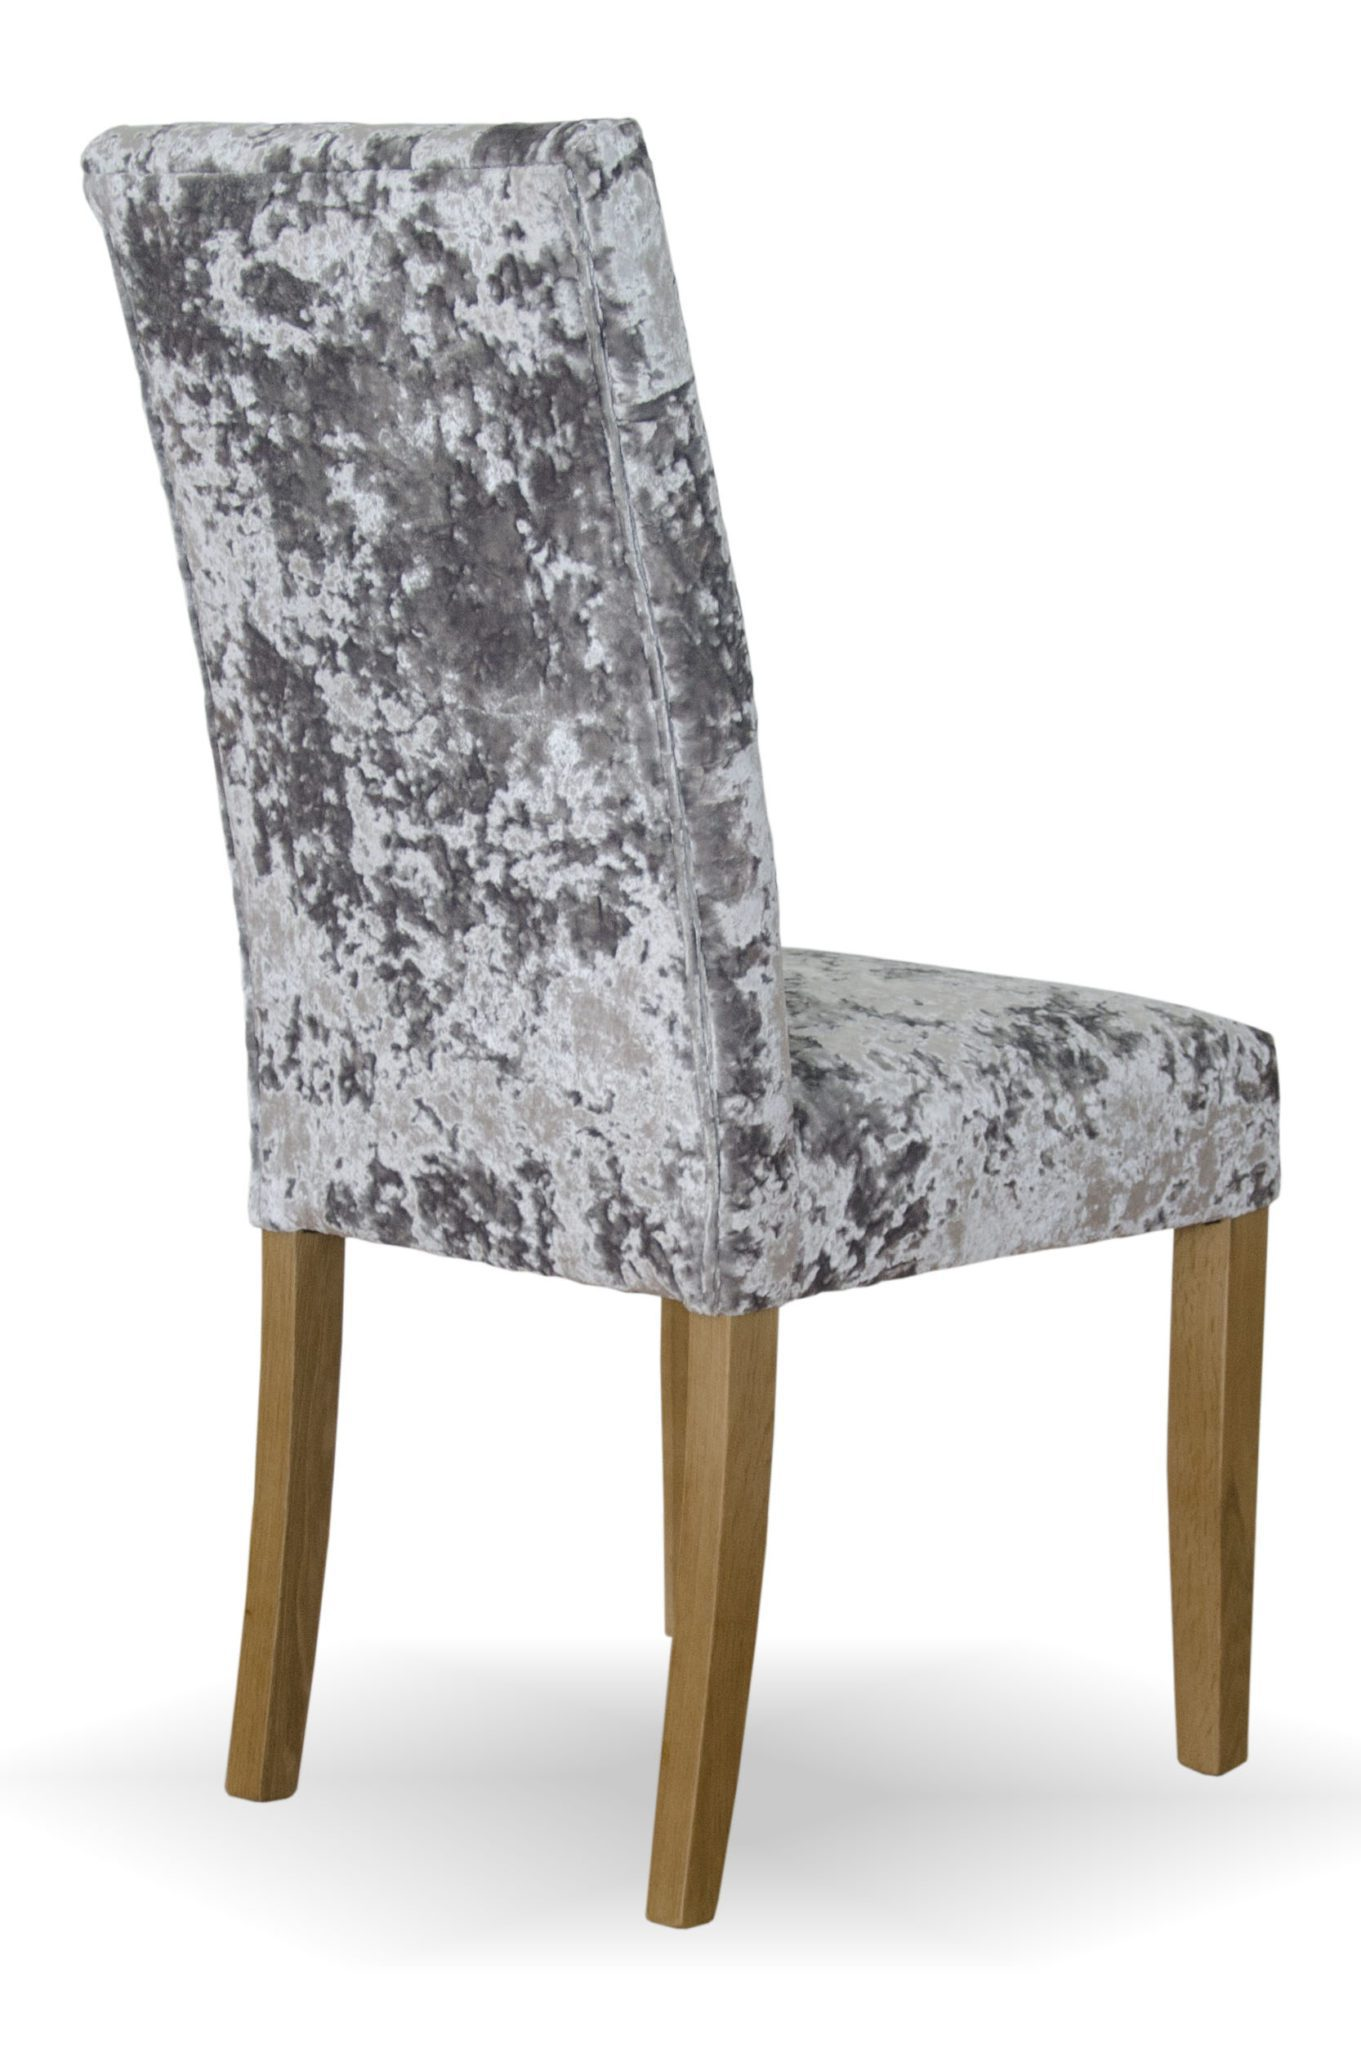 Stockholm chair deep crushed silver